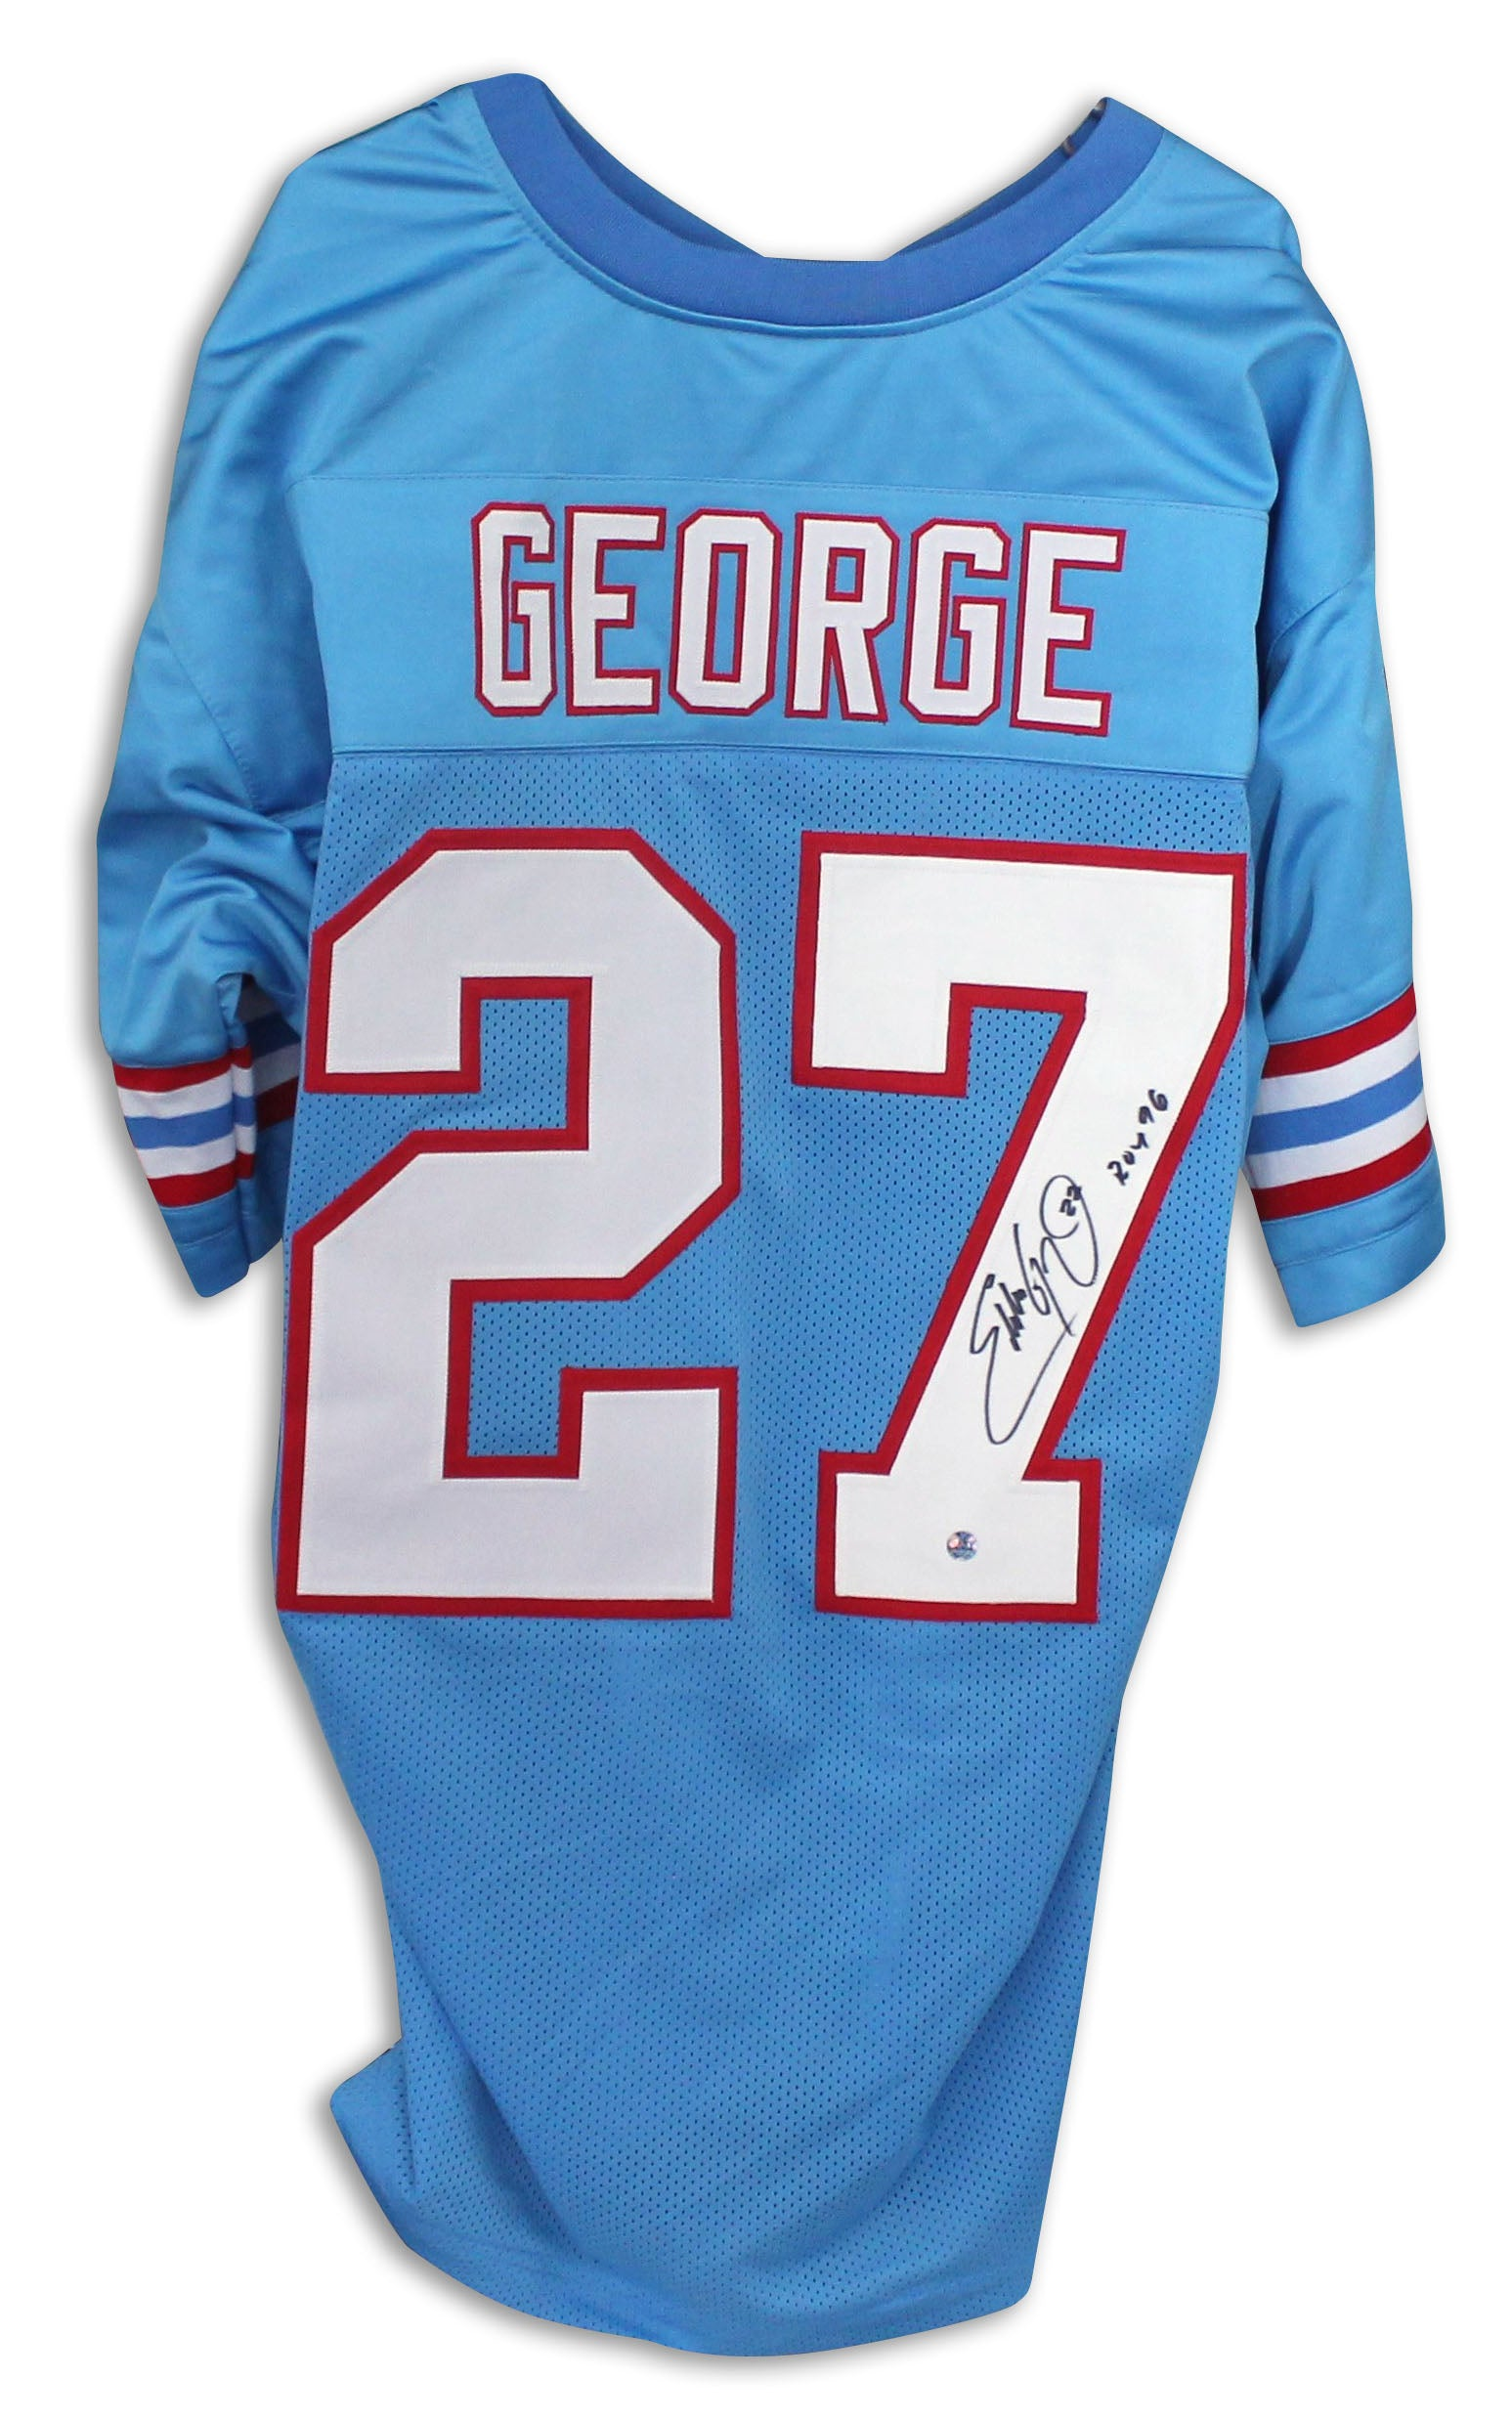 timeless design b95ed 56a2c Eddie George Houston Oilers Autographed Blue Jersey Inscribed ROY 96